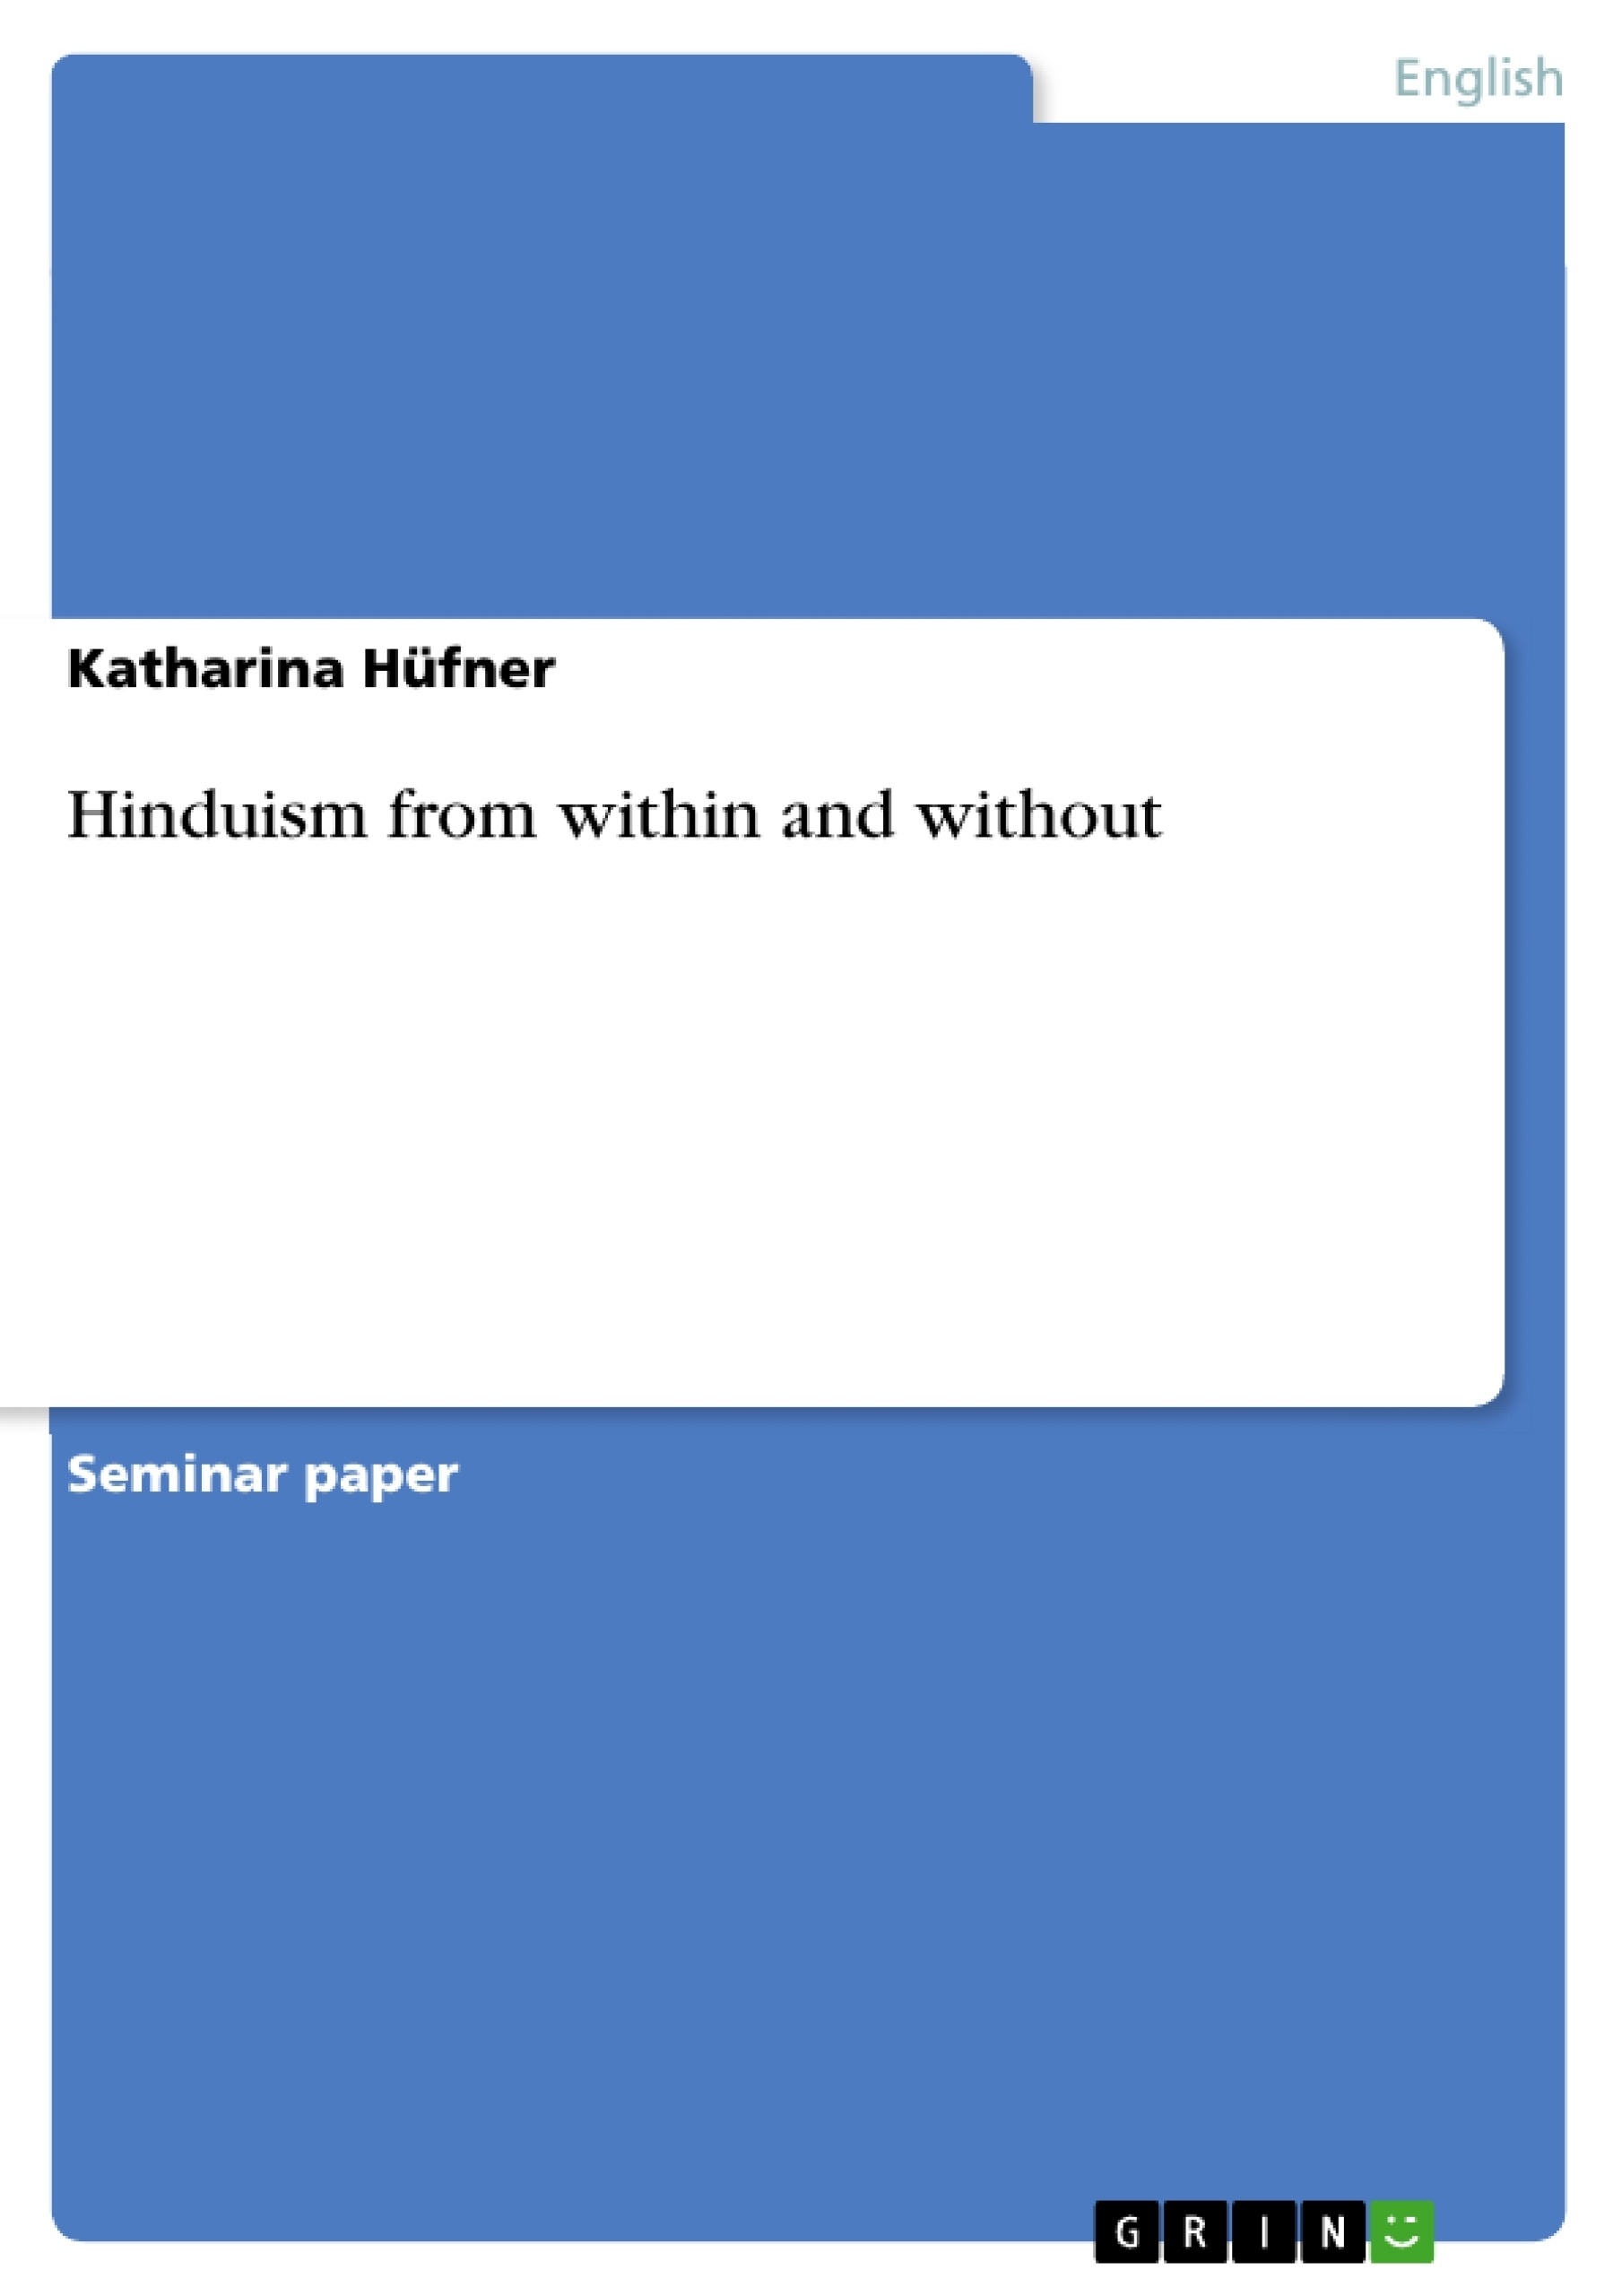 Title: Hinduism from within and without